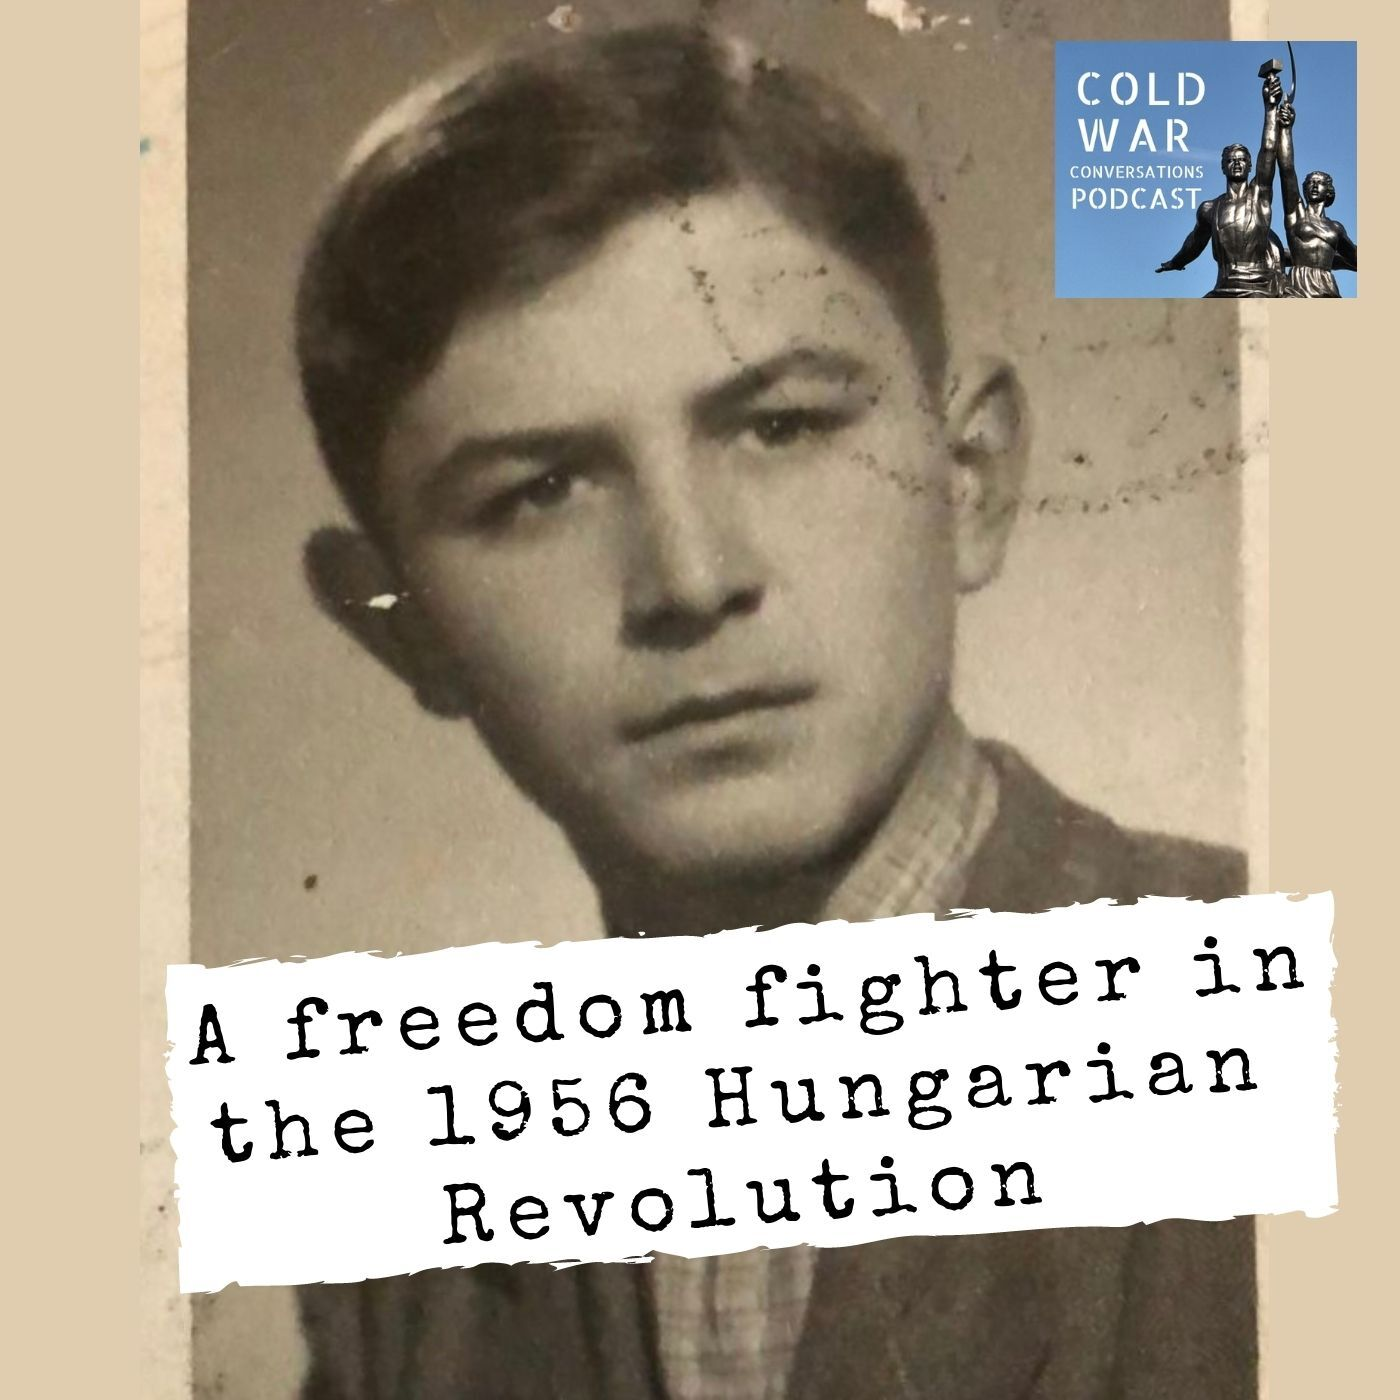 A freedom fighter in the 1956 Hungarian Revolution (159)